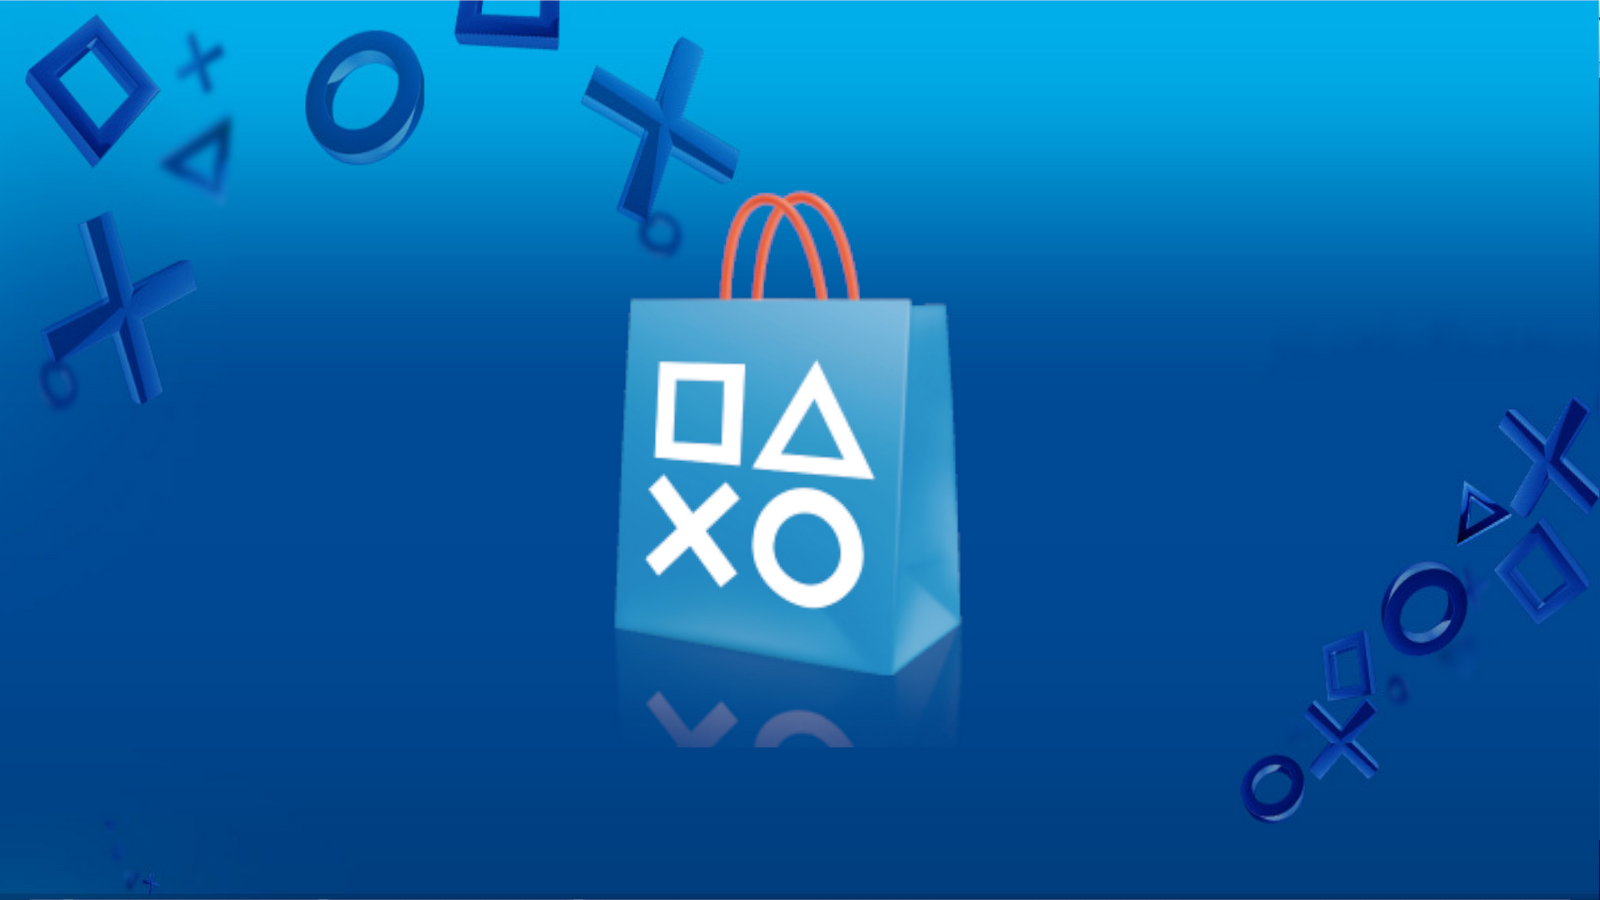 PlayStation Store has another flash sale, but no Mid-Year Sale ... yet?